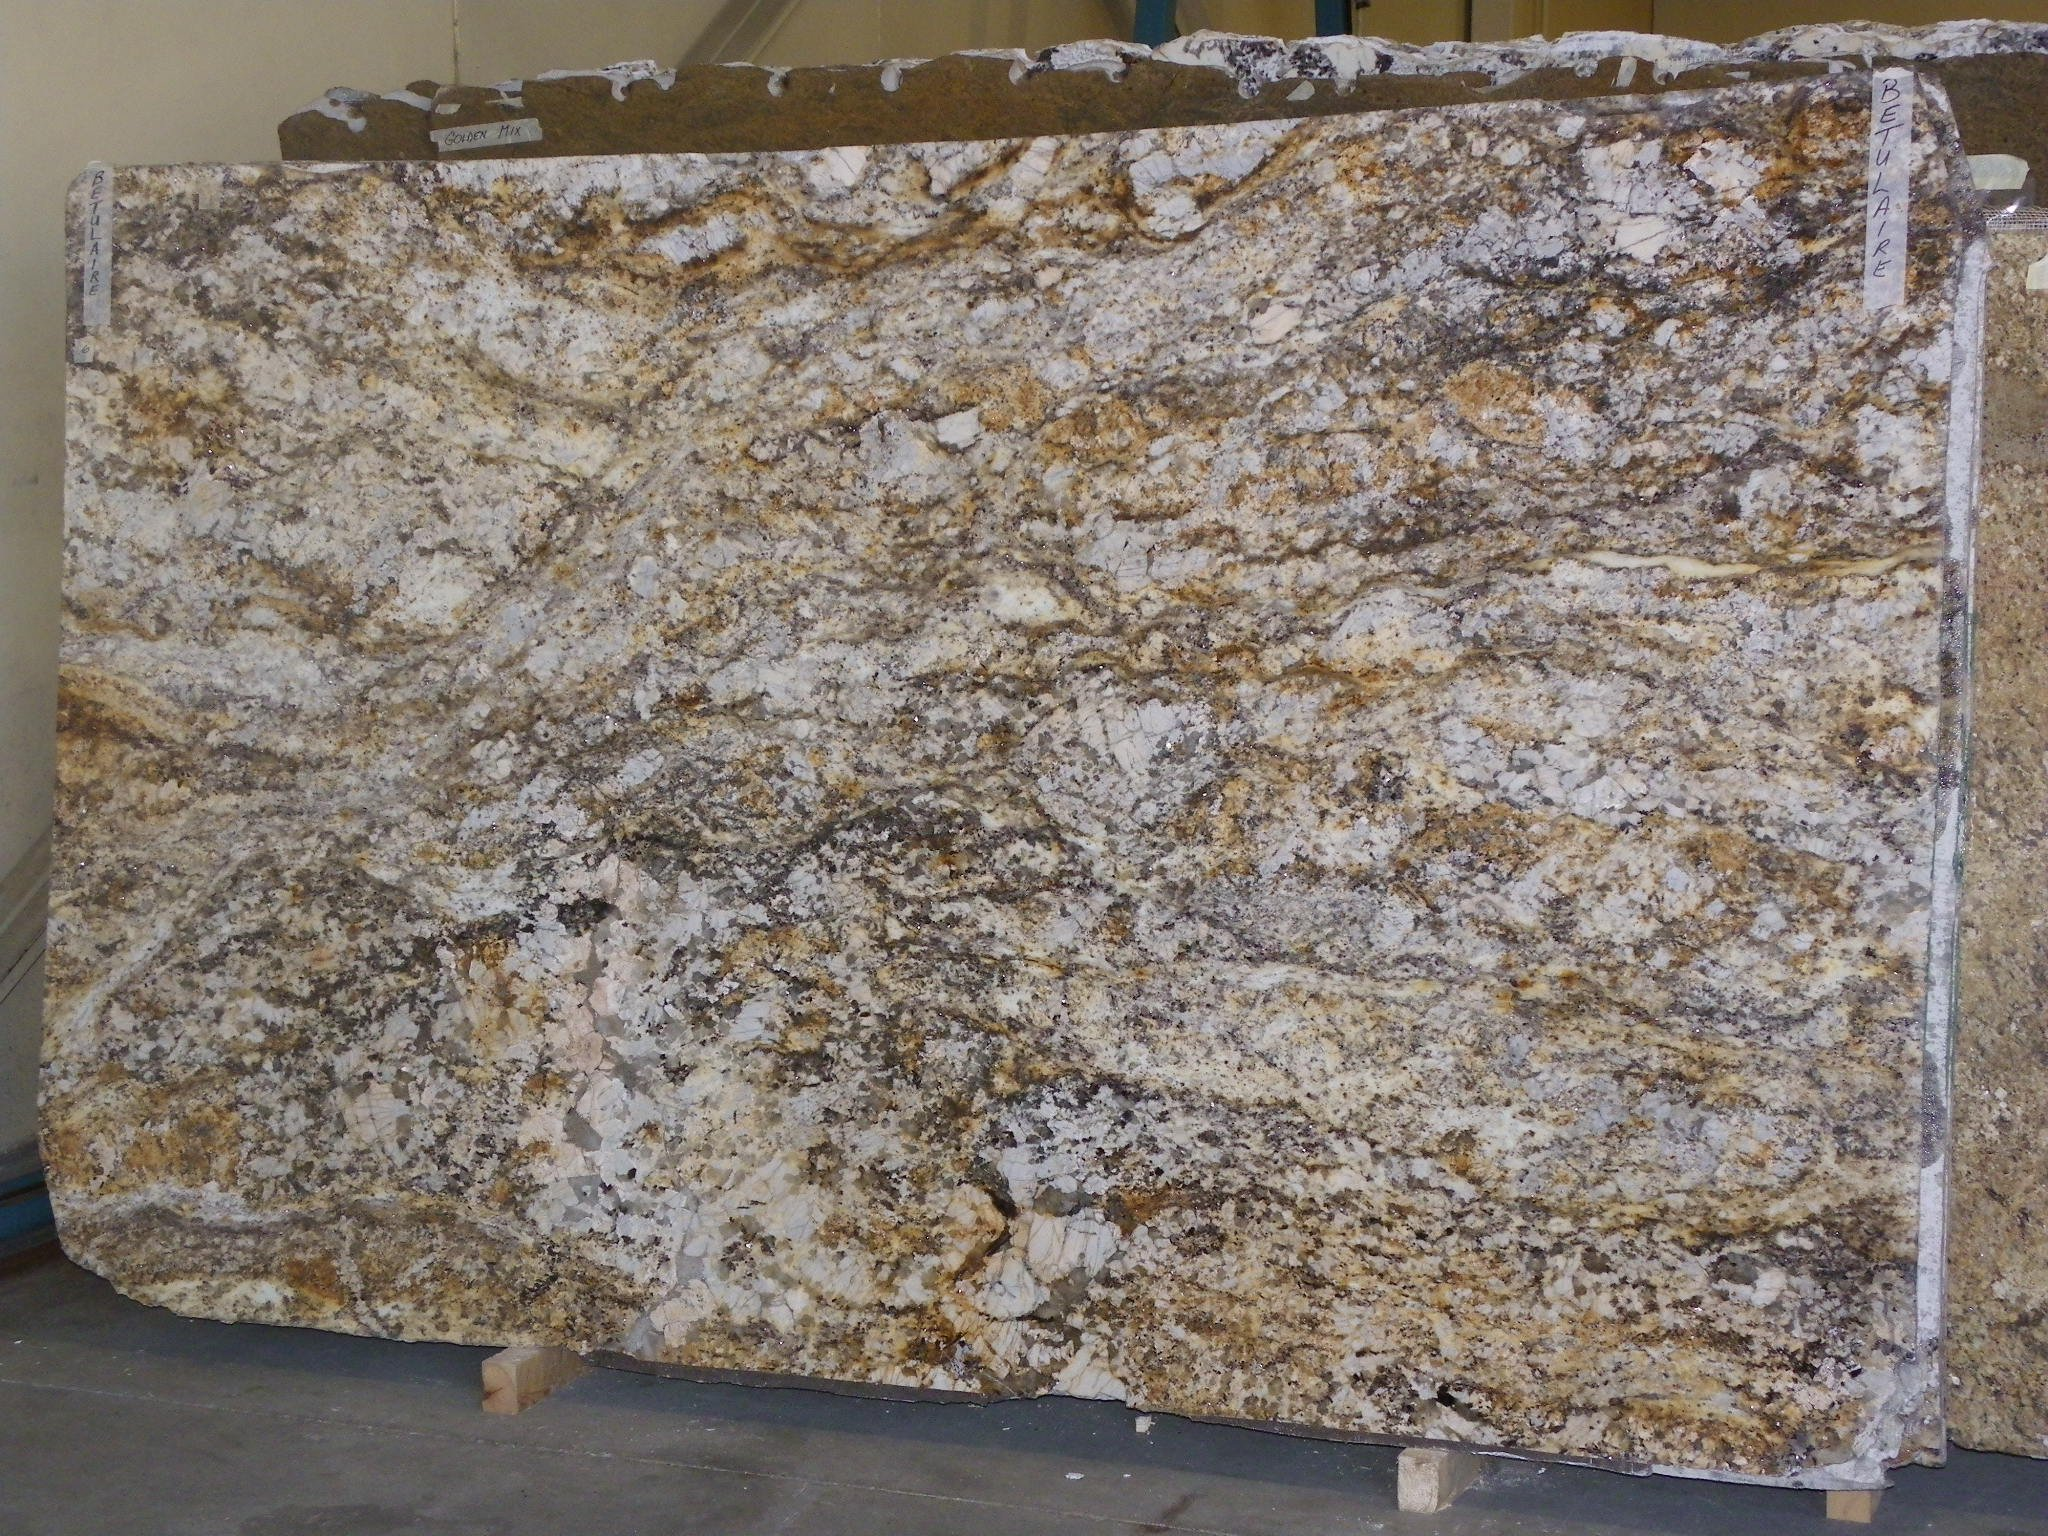 What Color Is Granite : Betulaire granite countertops charlotte nc